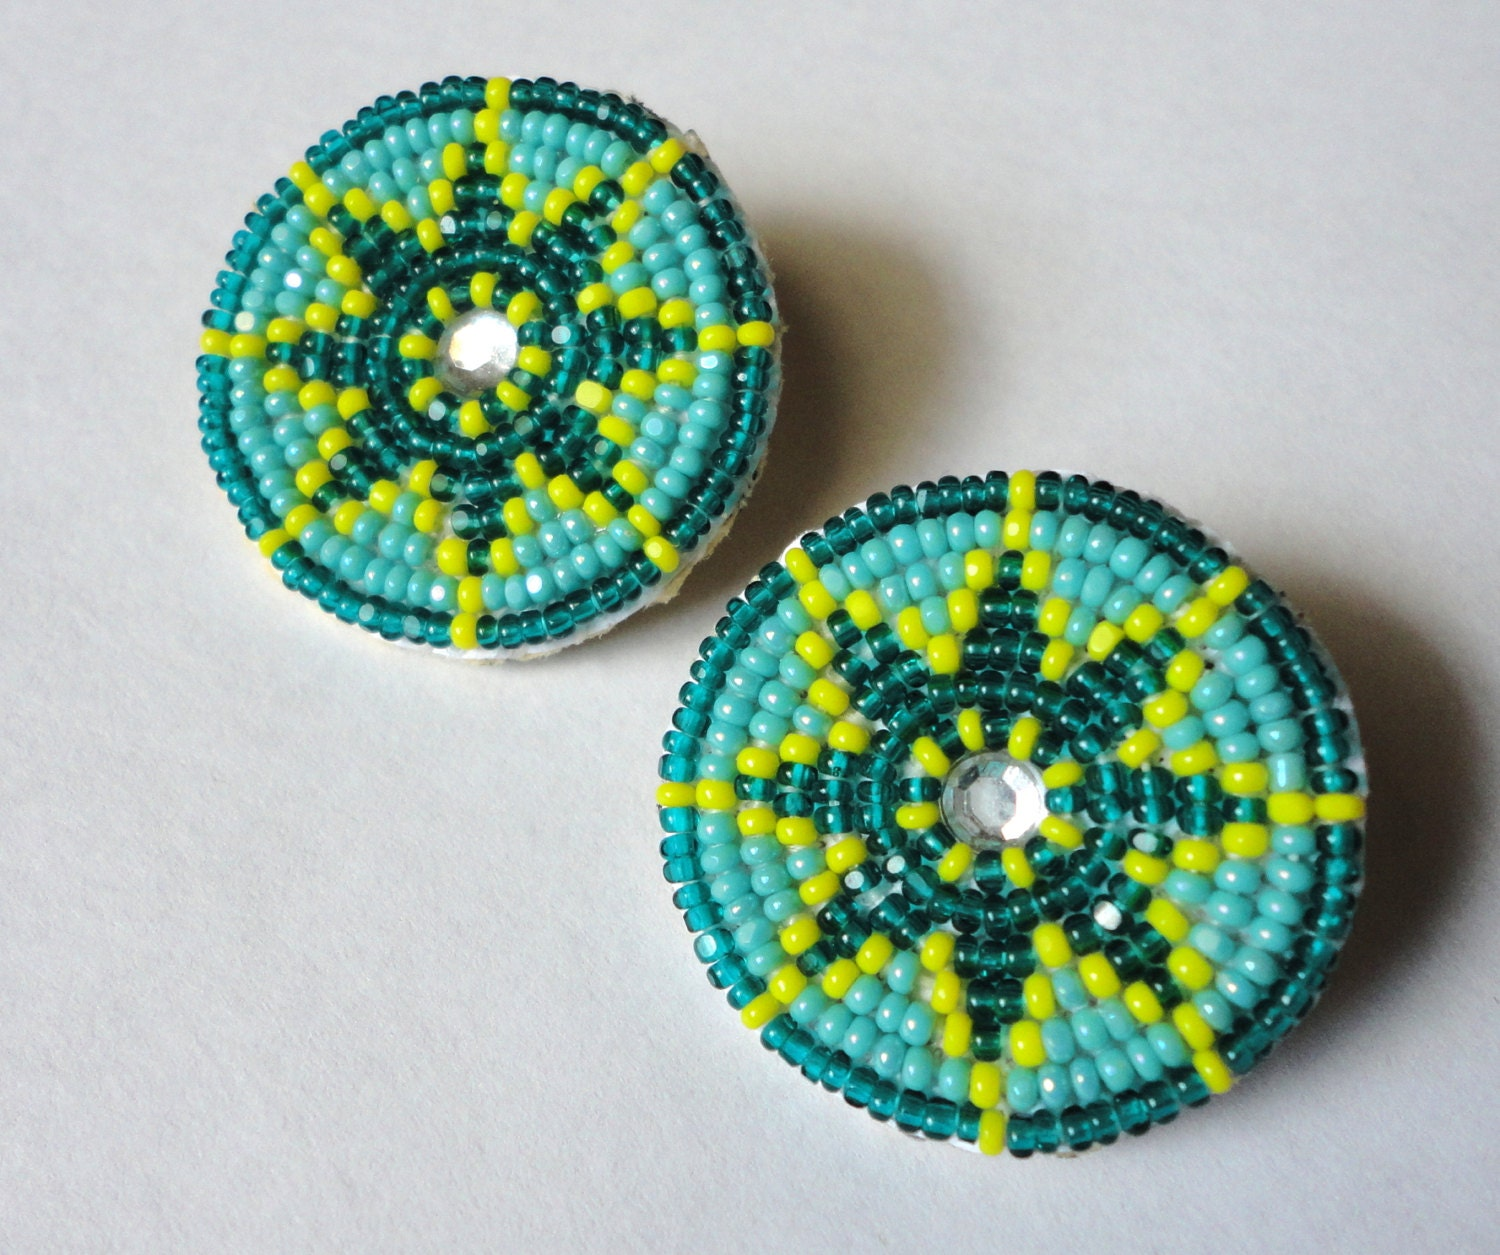 Small Native Plants For Australian Gardens: Small Round Star Native American Style Beaded Earrings